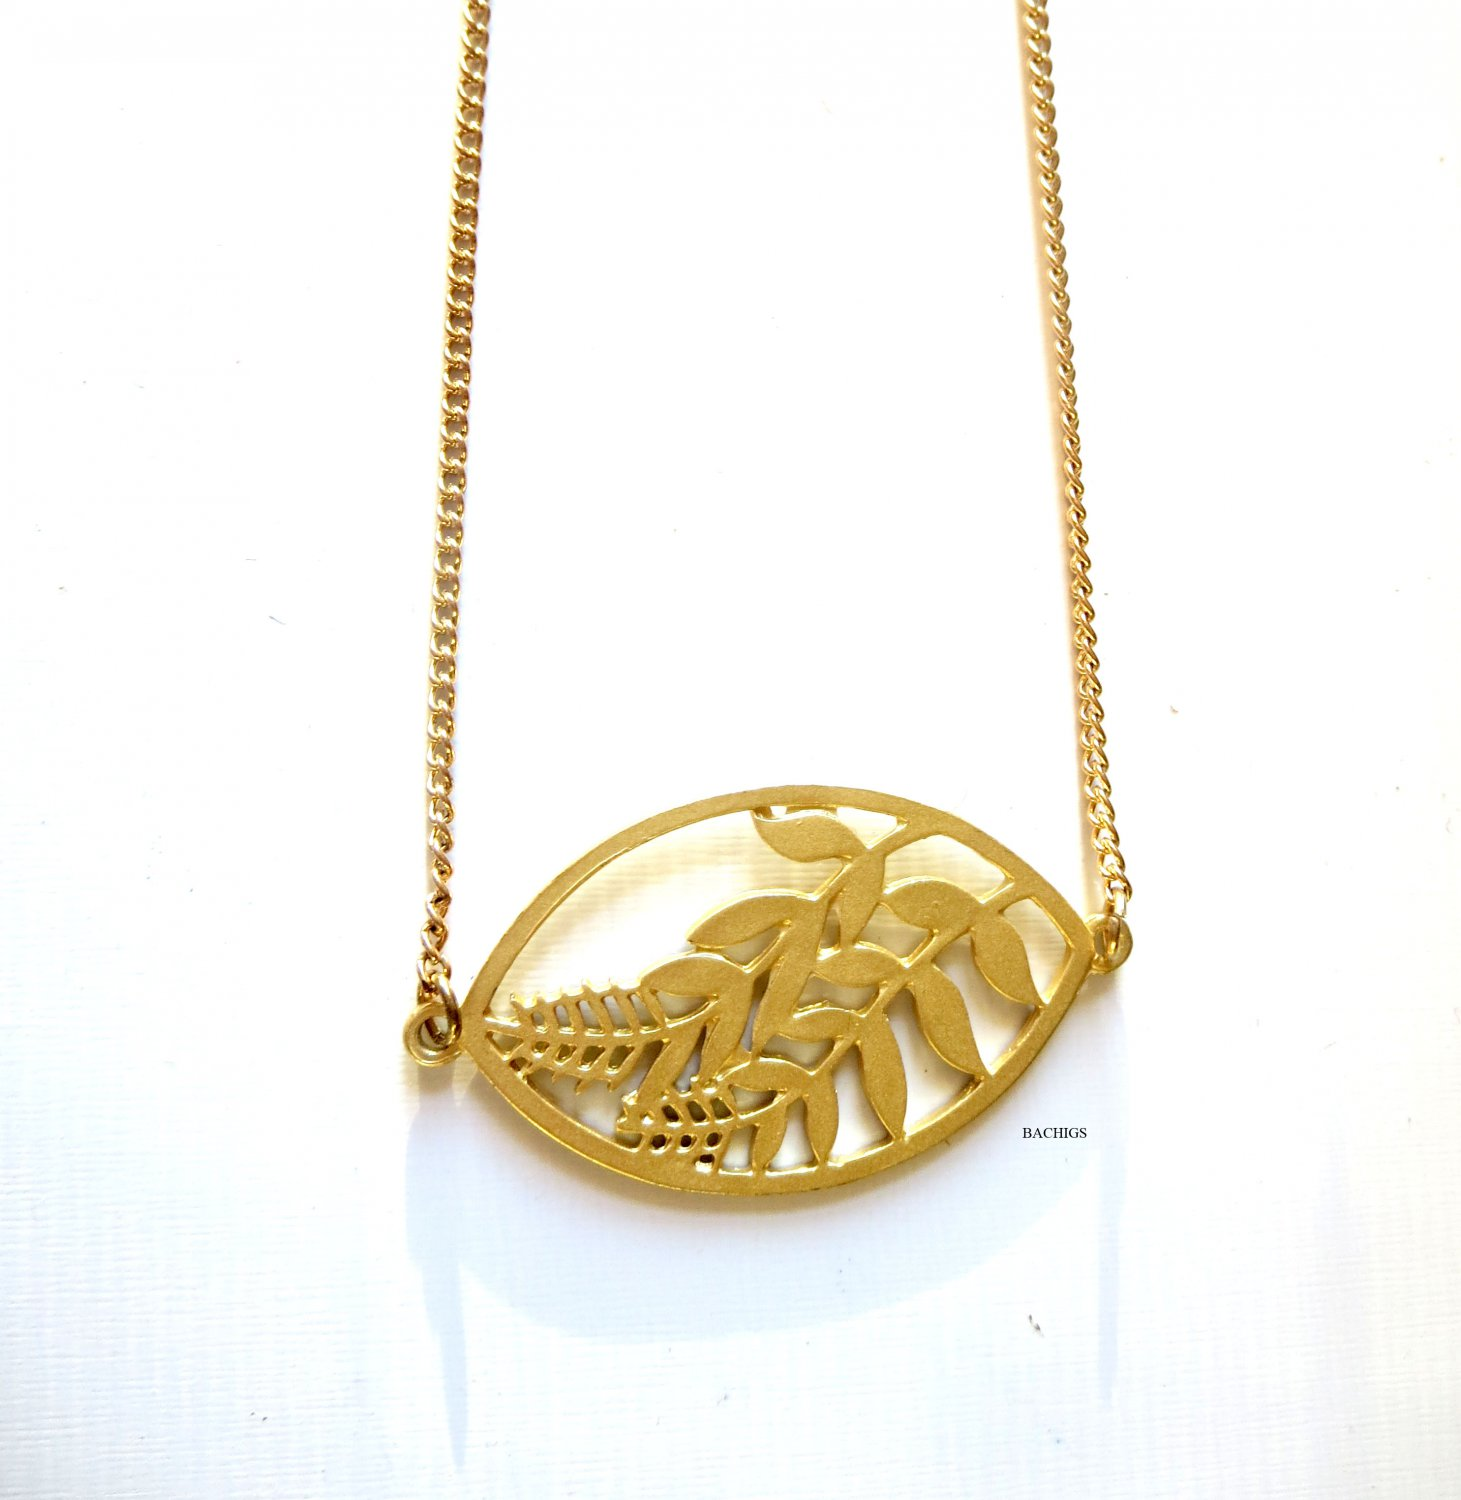 Gold leaf necklace fashion jewelry